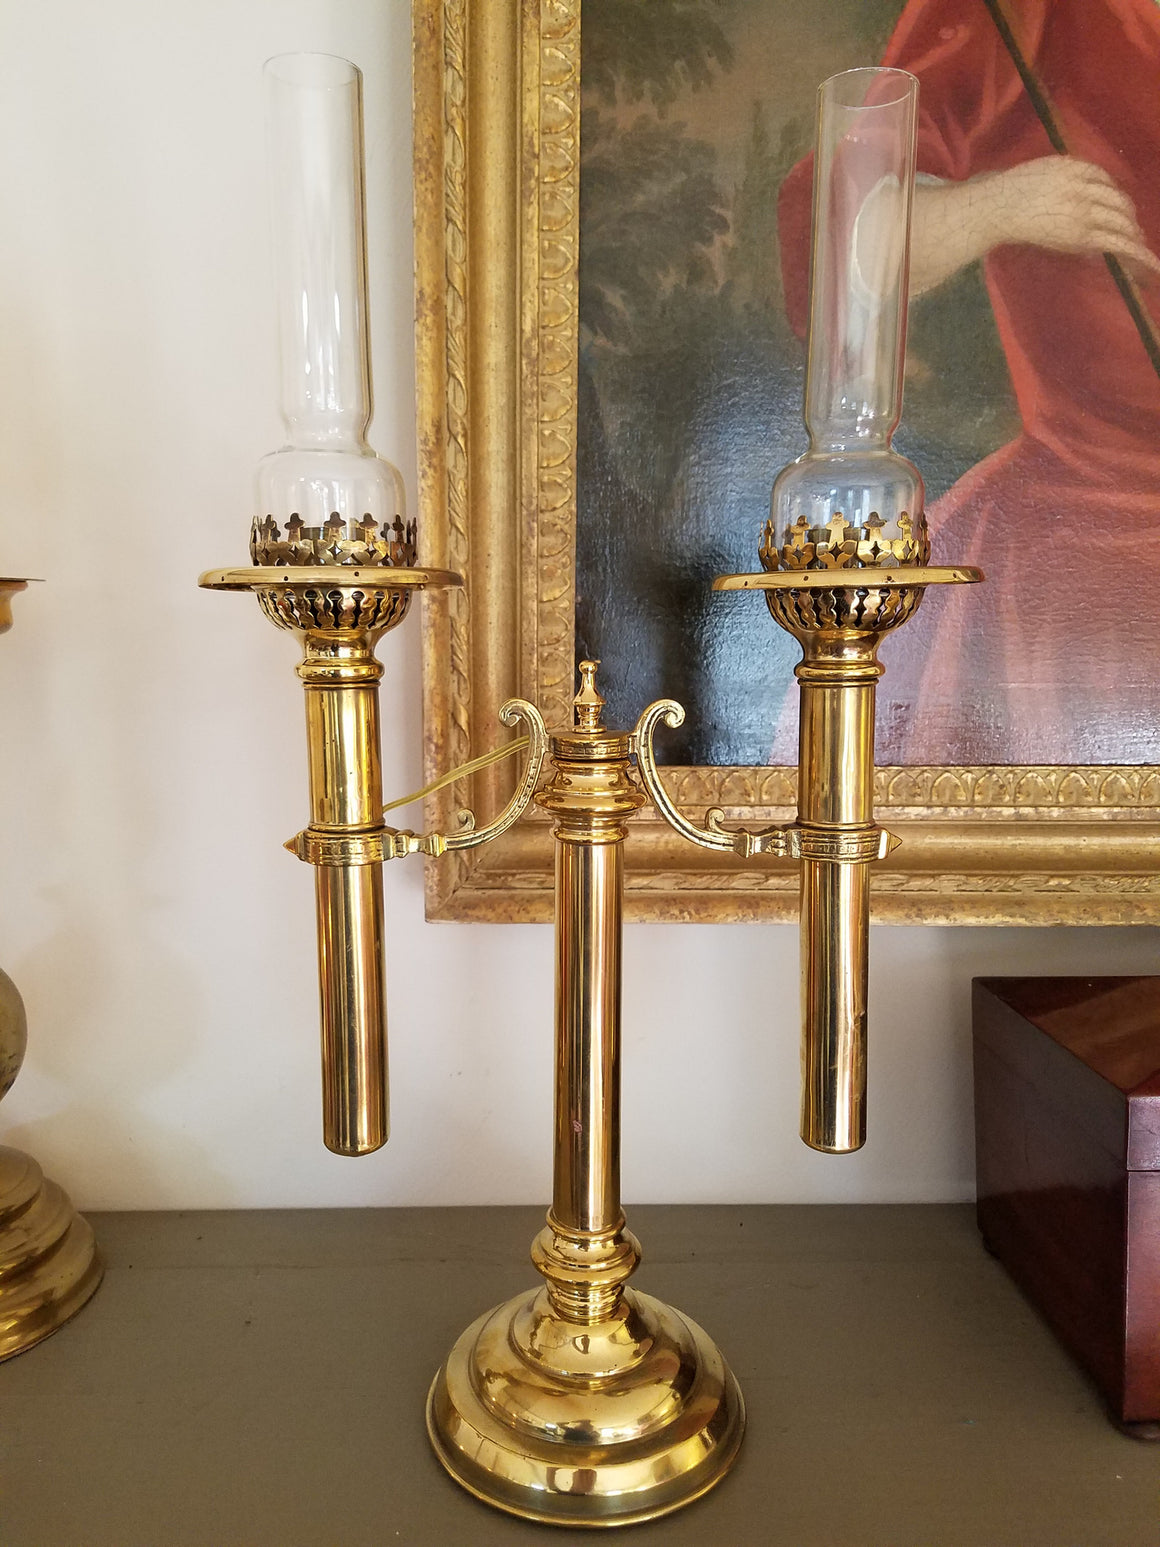 Double Arm Argand Style Lamp with glass chimneys